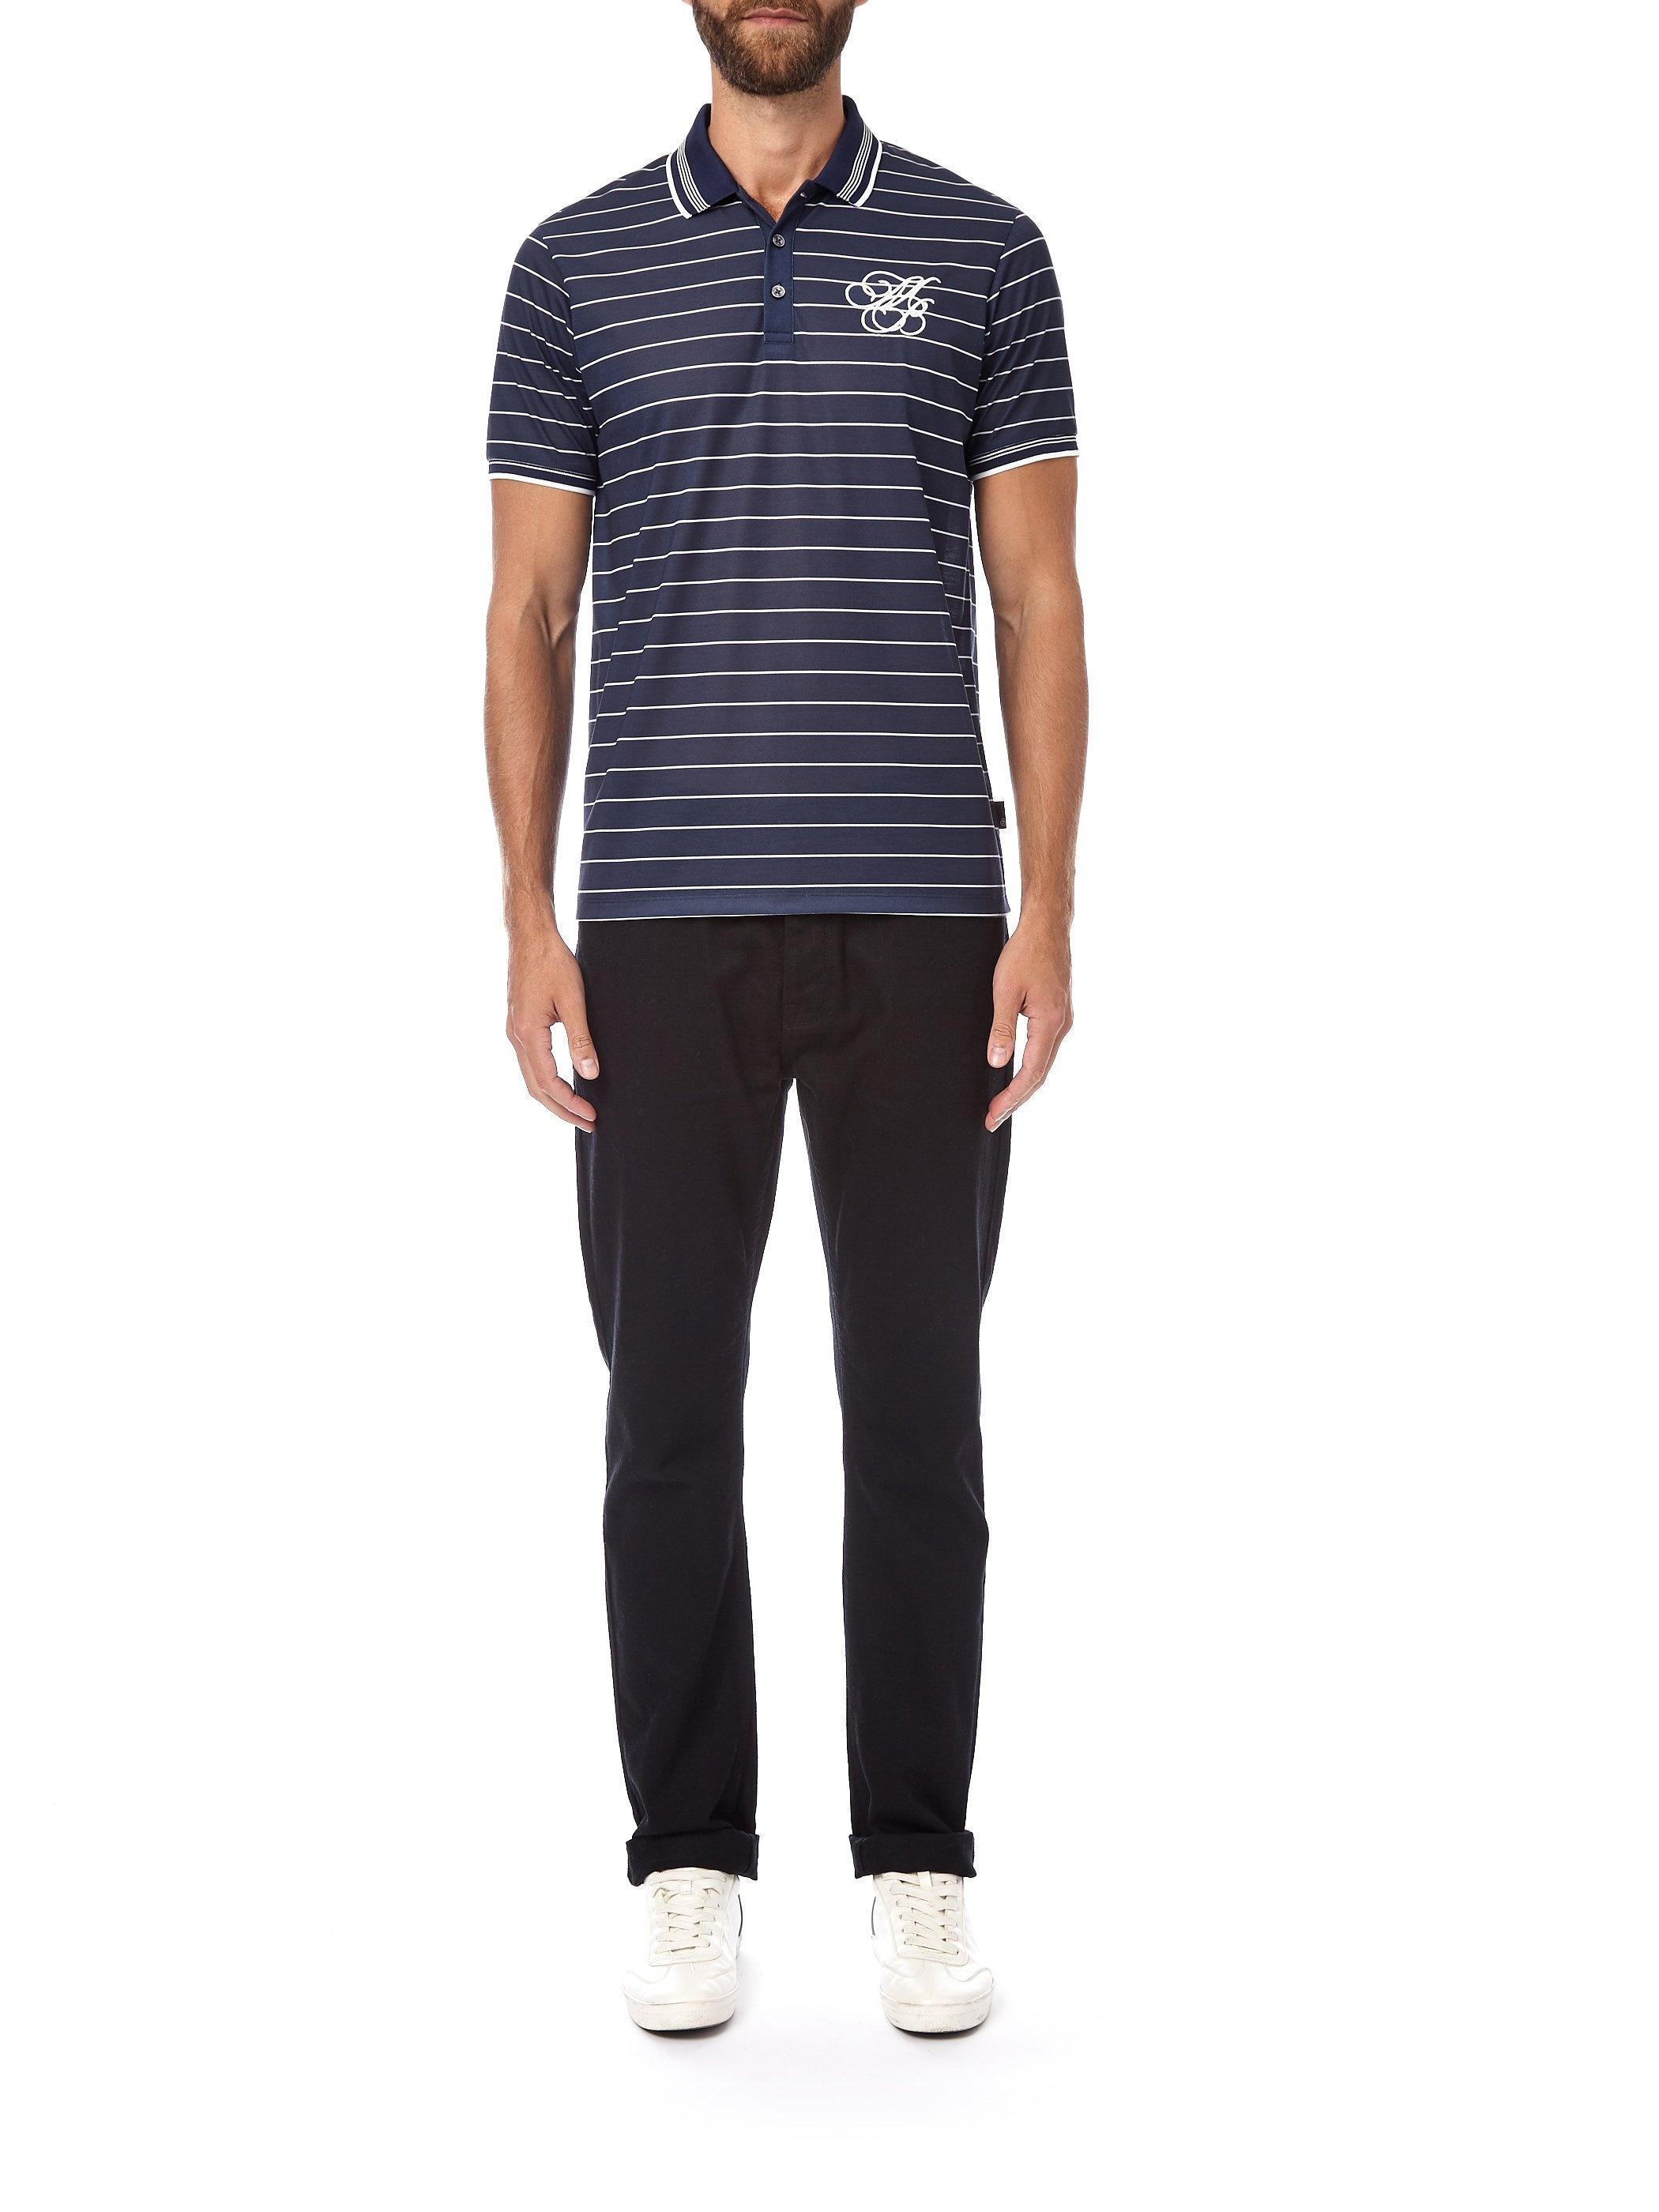 36bfb392 ... Navy And Ecru Striped Mb Embroidery Polo Shirt for Men - Lyst. View  fullscreen